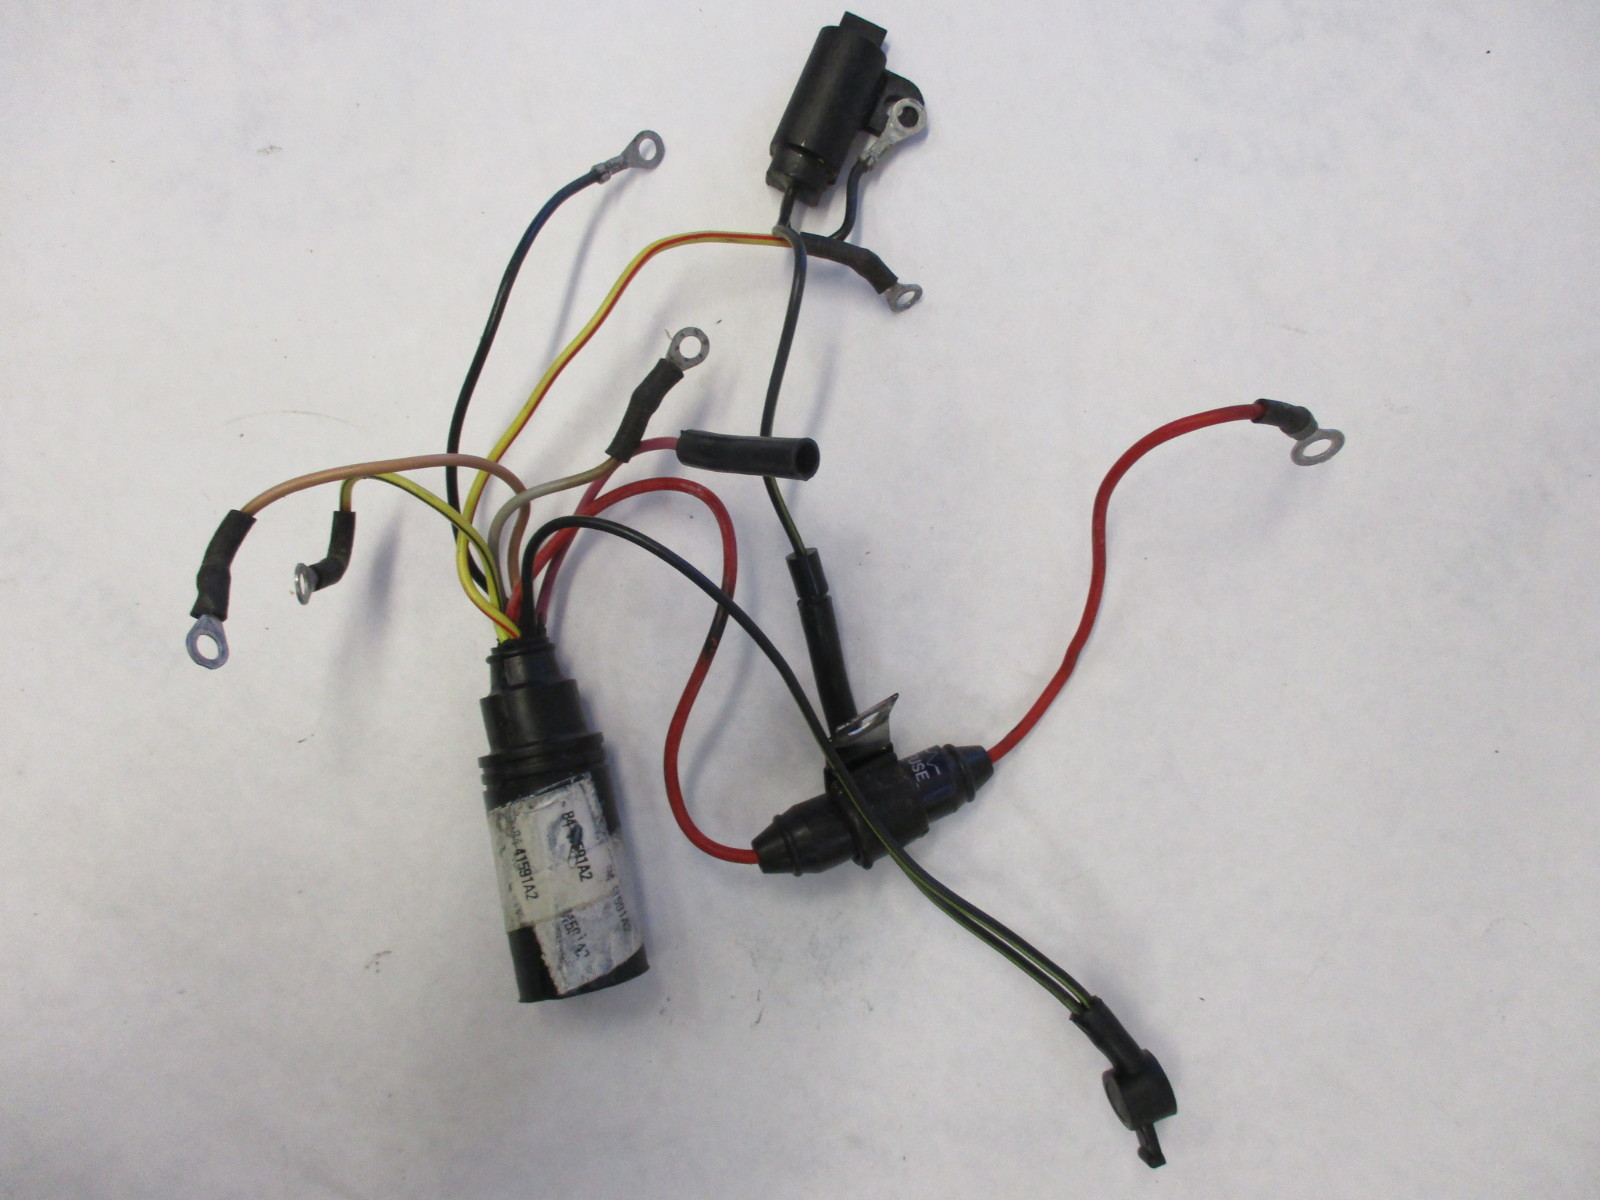 41591a3 engine wire harness for70-90 hp 3 cyl mercury ... wiring diagrams mercury outboard motor